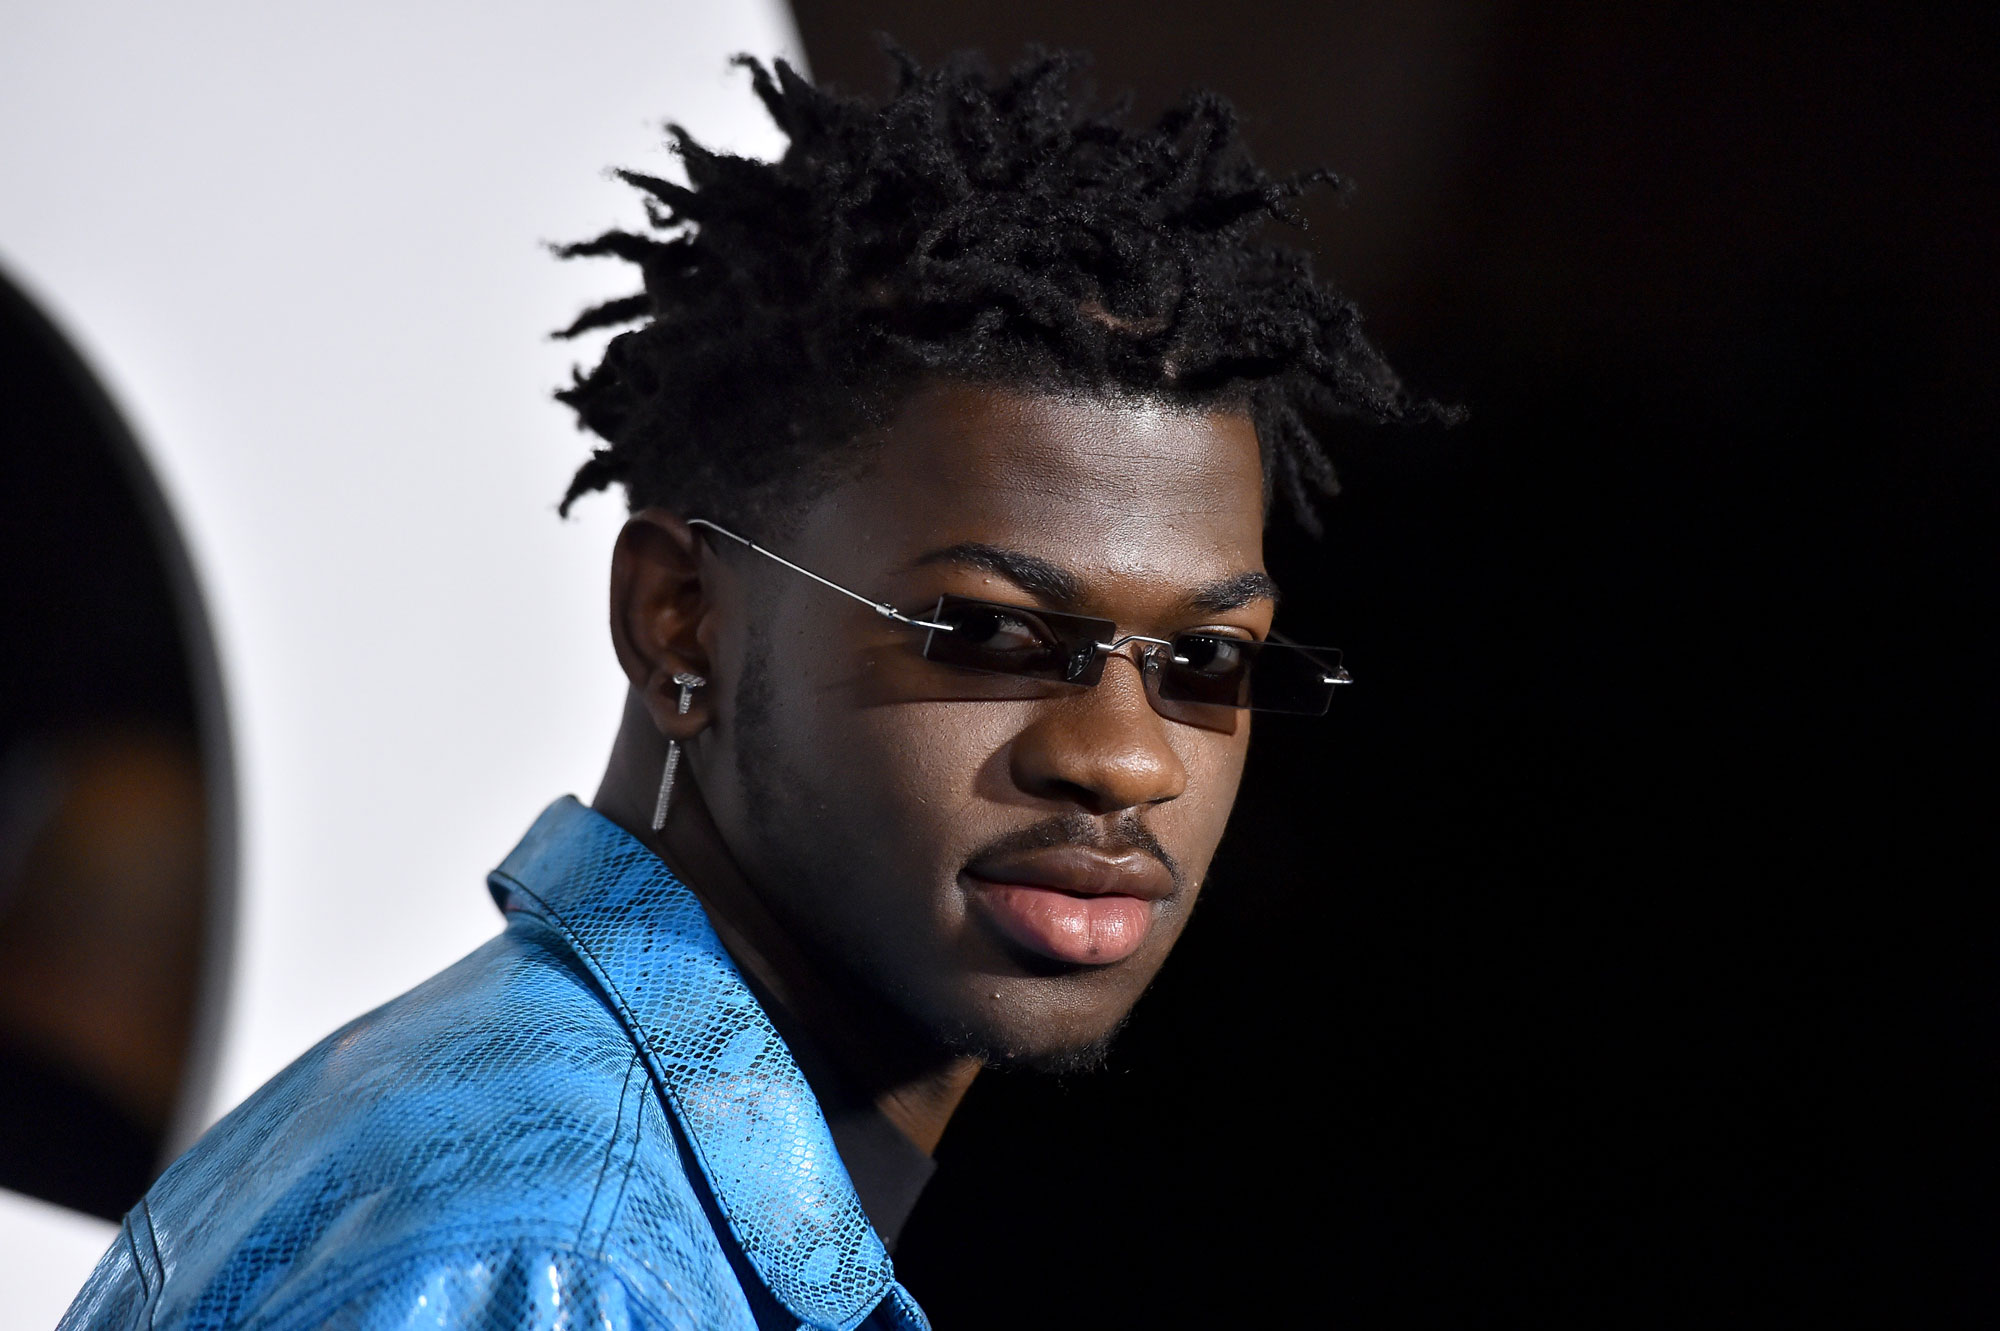 Lil Nas X, a Black man, wears a blue snakeskin jacket, a long earring, and vintage sunglasses.